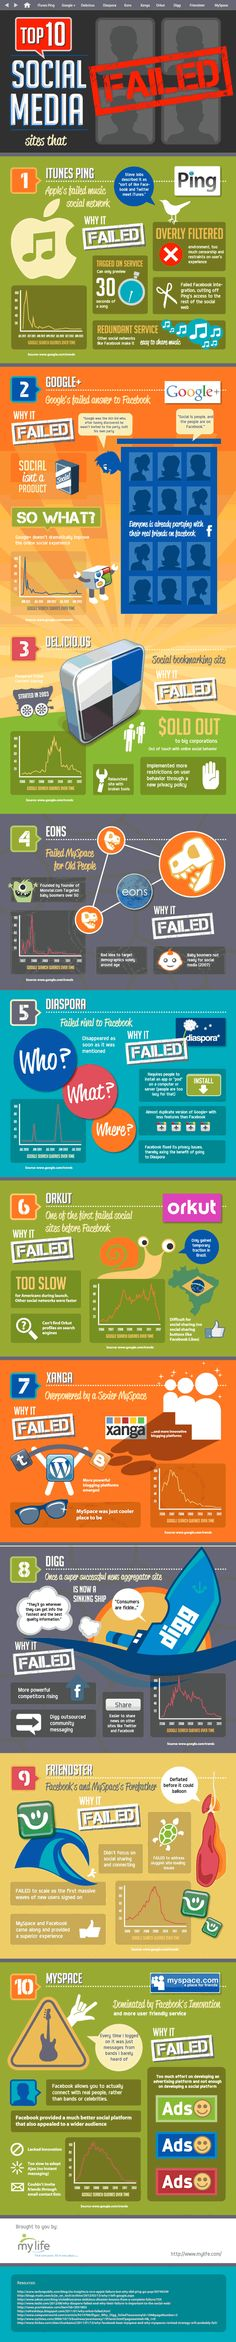 Top 10 Social Media Sites that Failed [Infographic]